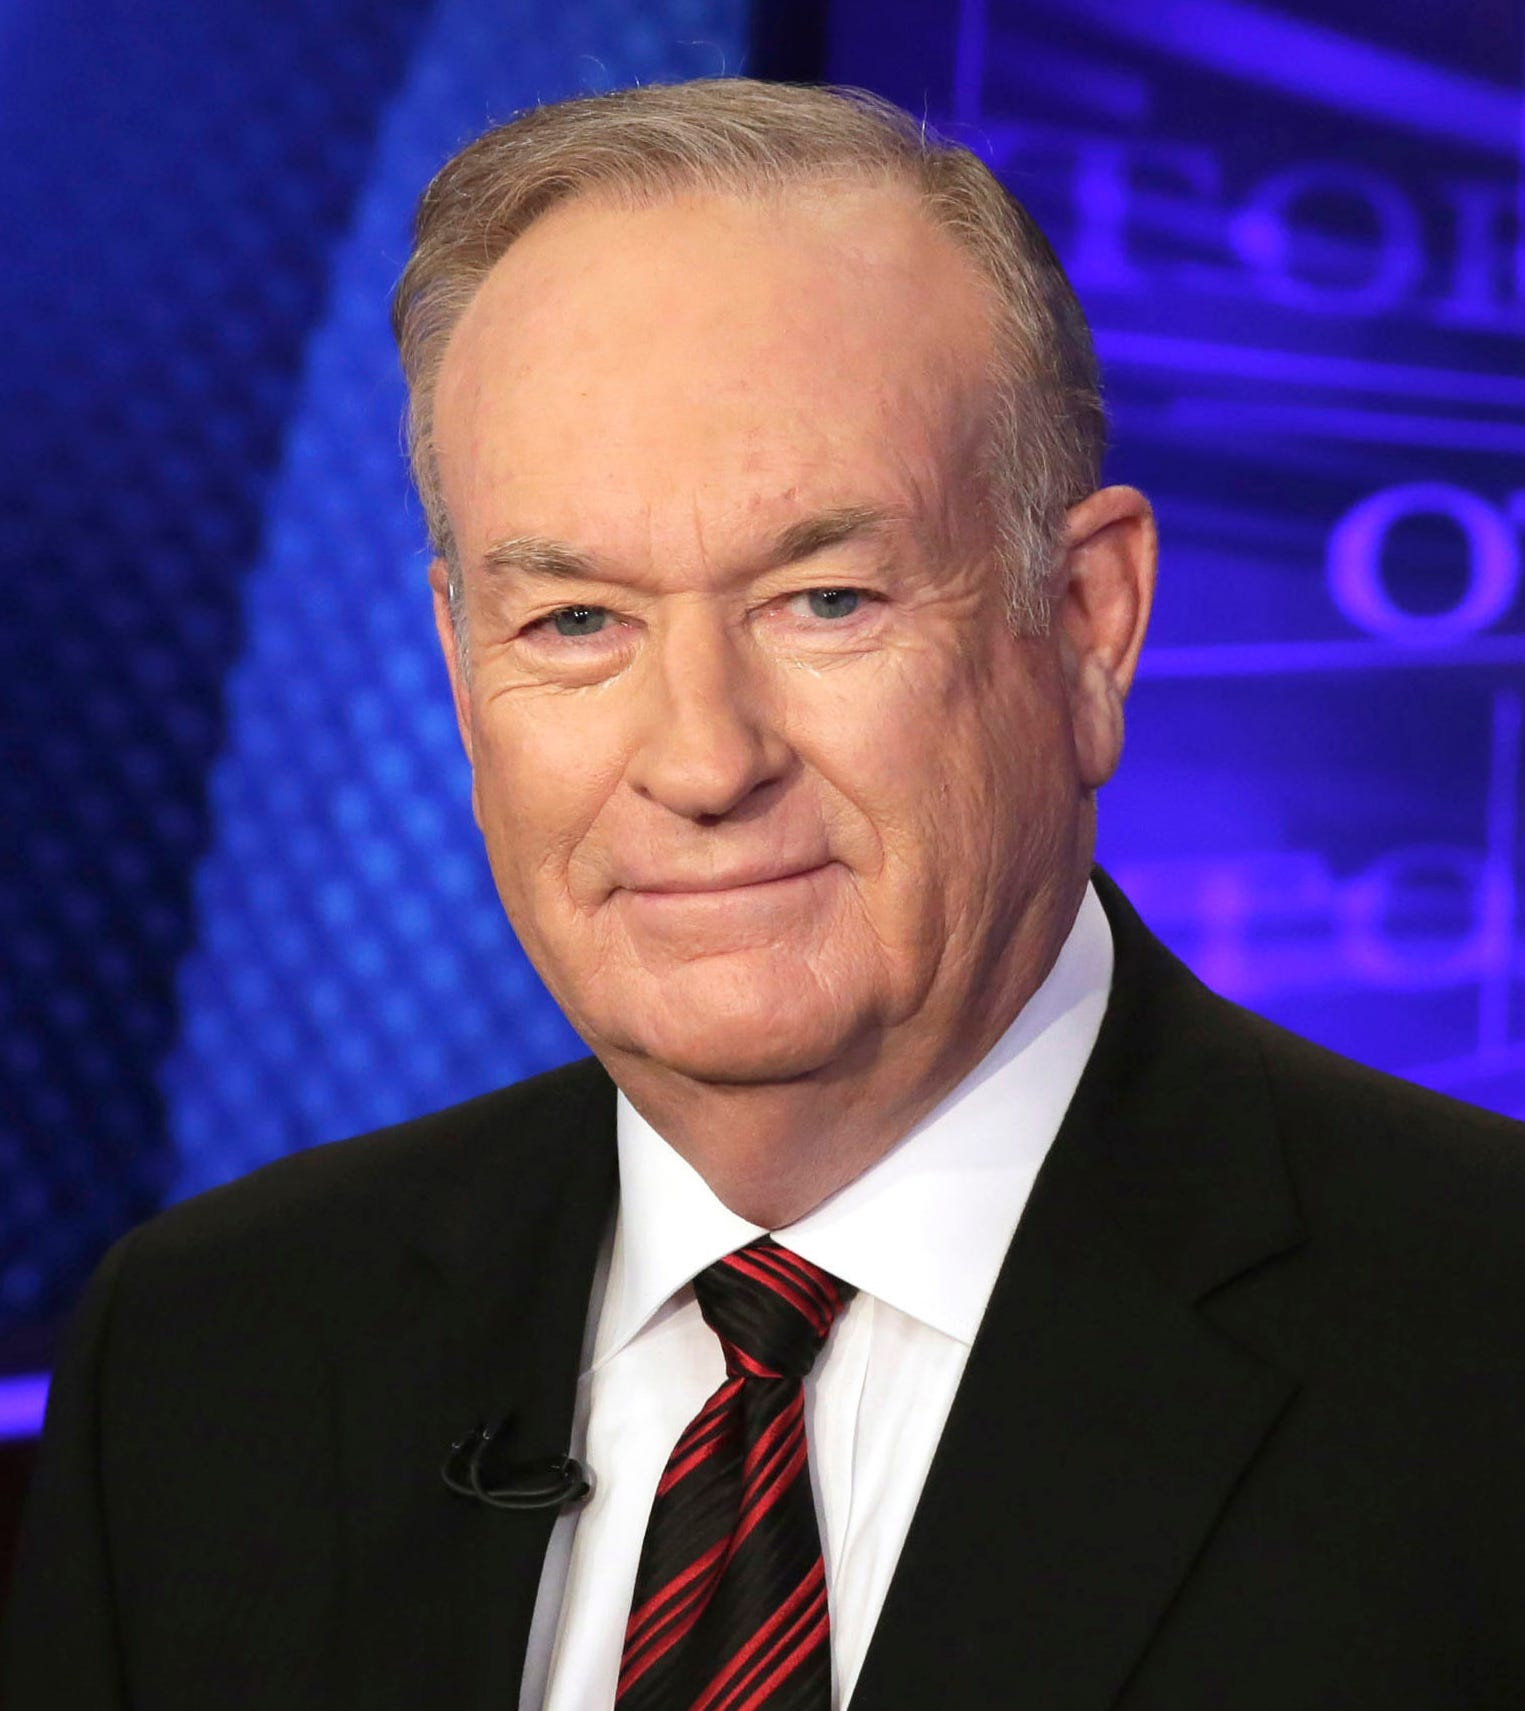 'Killing' series co-author Bill O'Reilly.